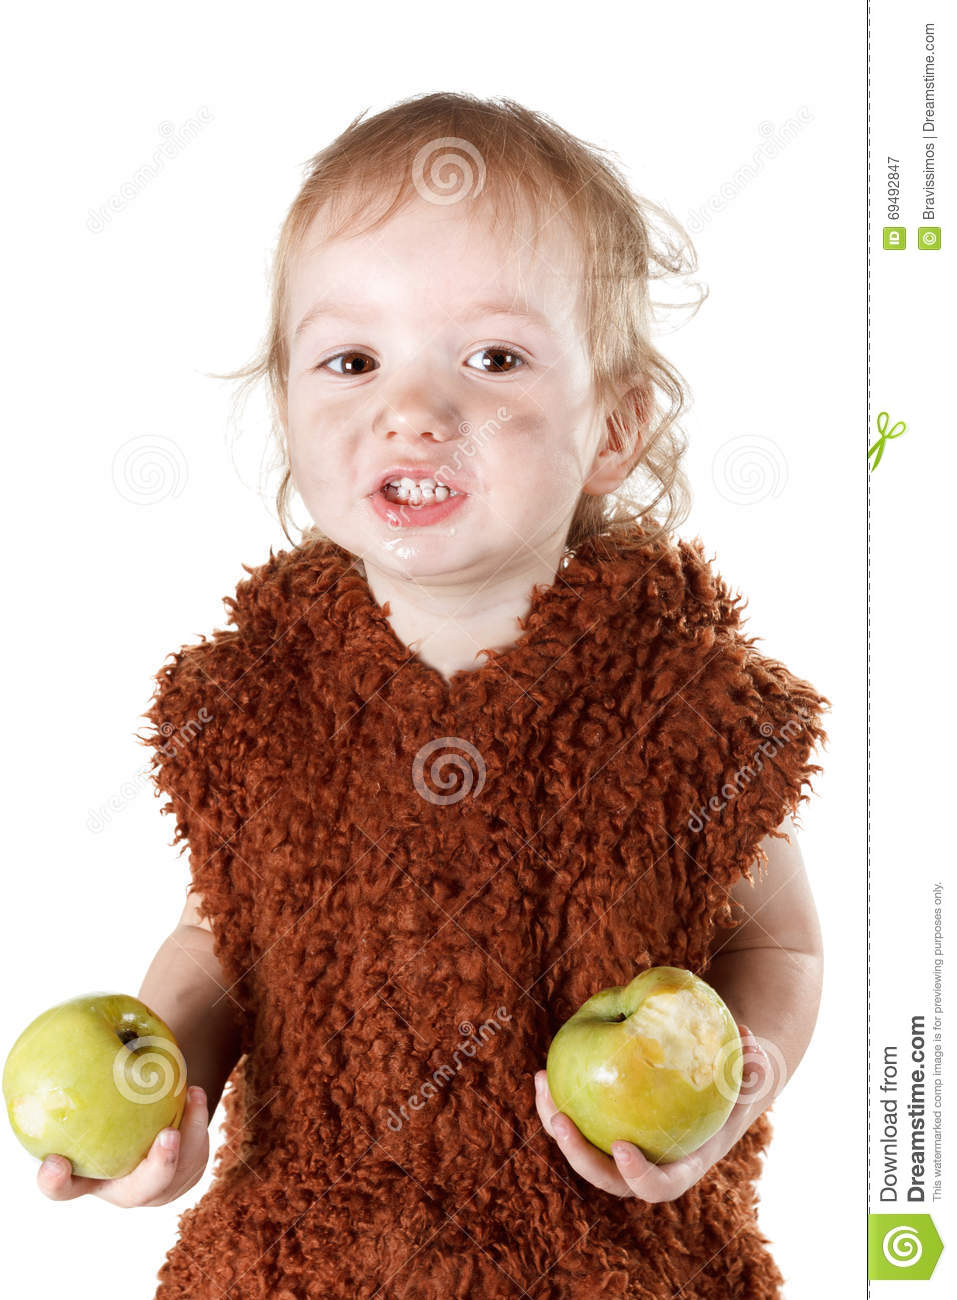 Little funny Neanderthal boy in a suit with dirty face eating an apple.